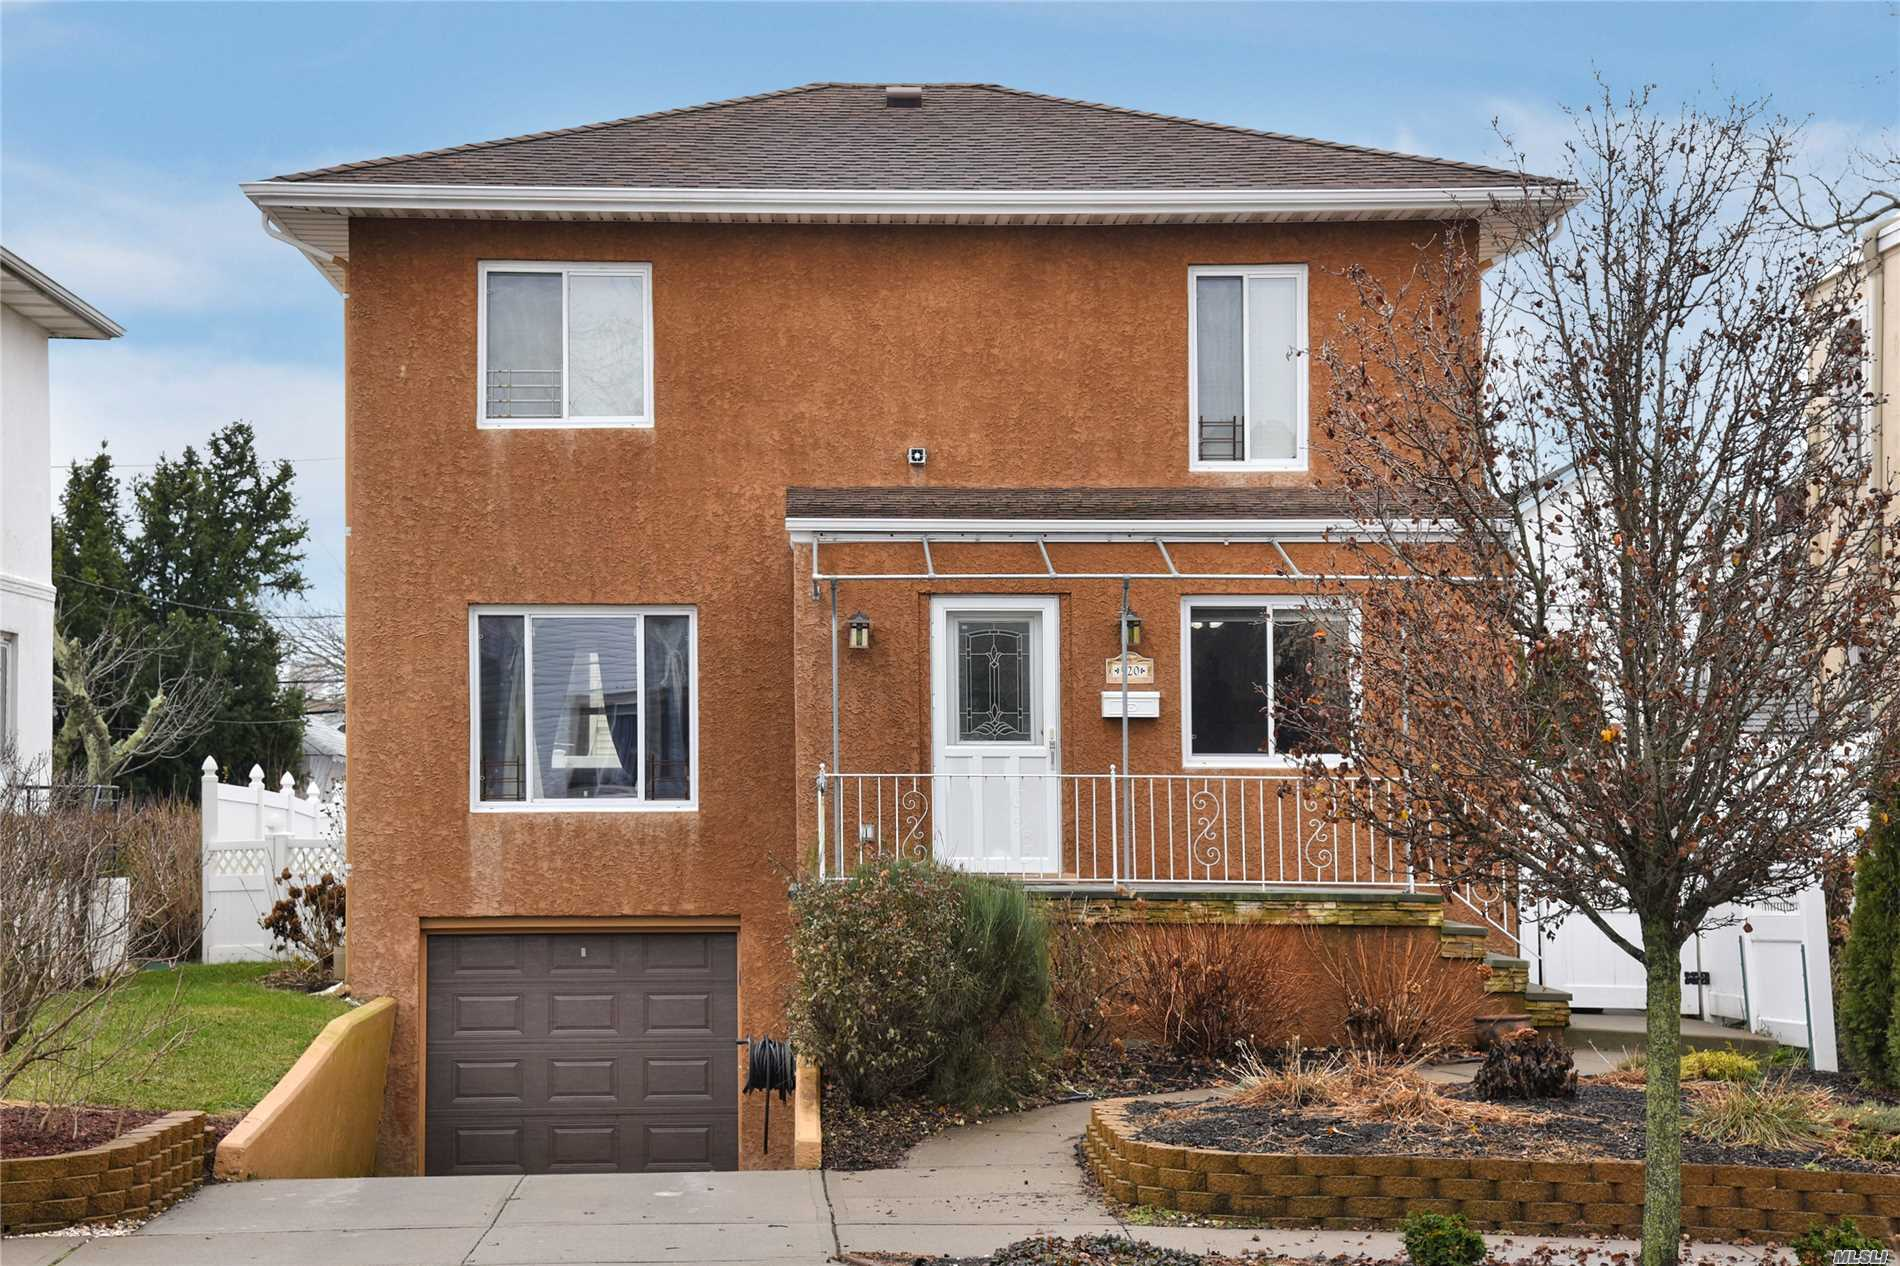 Charming Well Maintained & Updated Colonial, Featuring Lrg Lvrm, Fdrm, Updated Eik, 3 Bdrms 1.5 Bths, Front Porch, Beautiful Deck, W/Lrg Enclosed Backyard, Deck Has Natural Gas Hook-Up For Grills Generators, Also Has Electricity On & Around Deck, Basement Has Wave Unit, Garage Has A Coastal Protection System Built Custom For Garage W/ All Hardware Necessary To Seal Garage Door & Protect From Flood Damage, The Garage Also Has A French Drain W/ 2 Sump Pumps. Shopping & Restaurants Very Close,